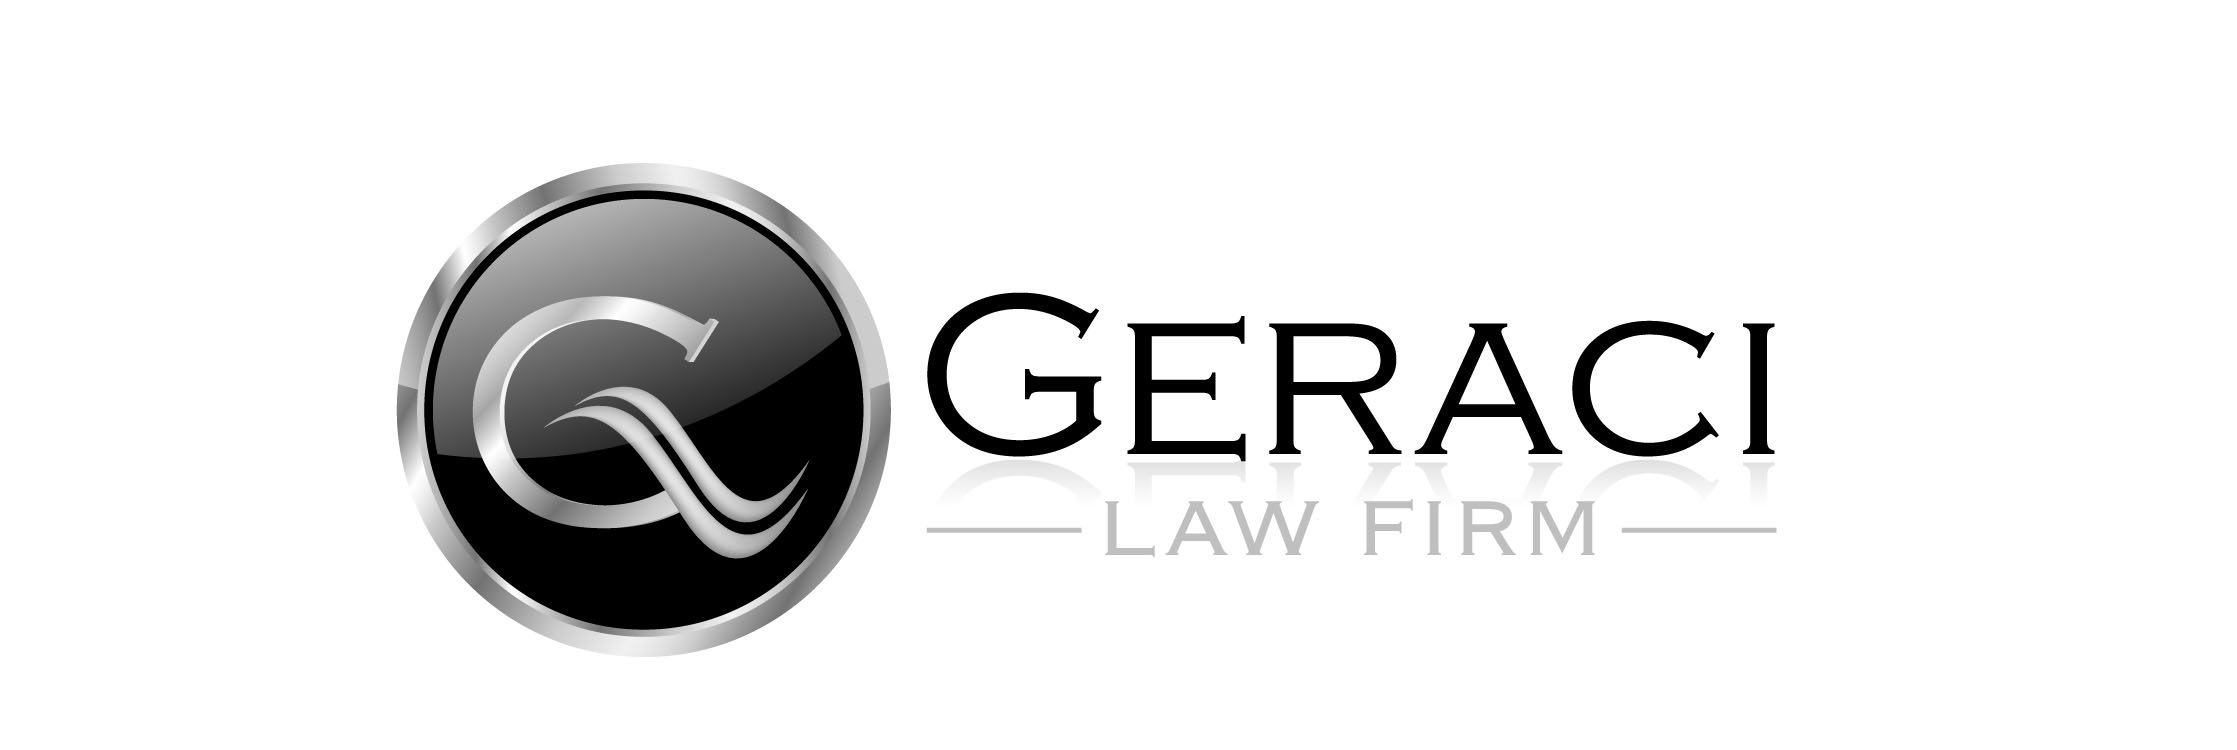 Geraci Law Firm